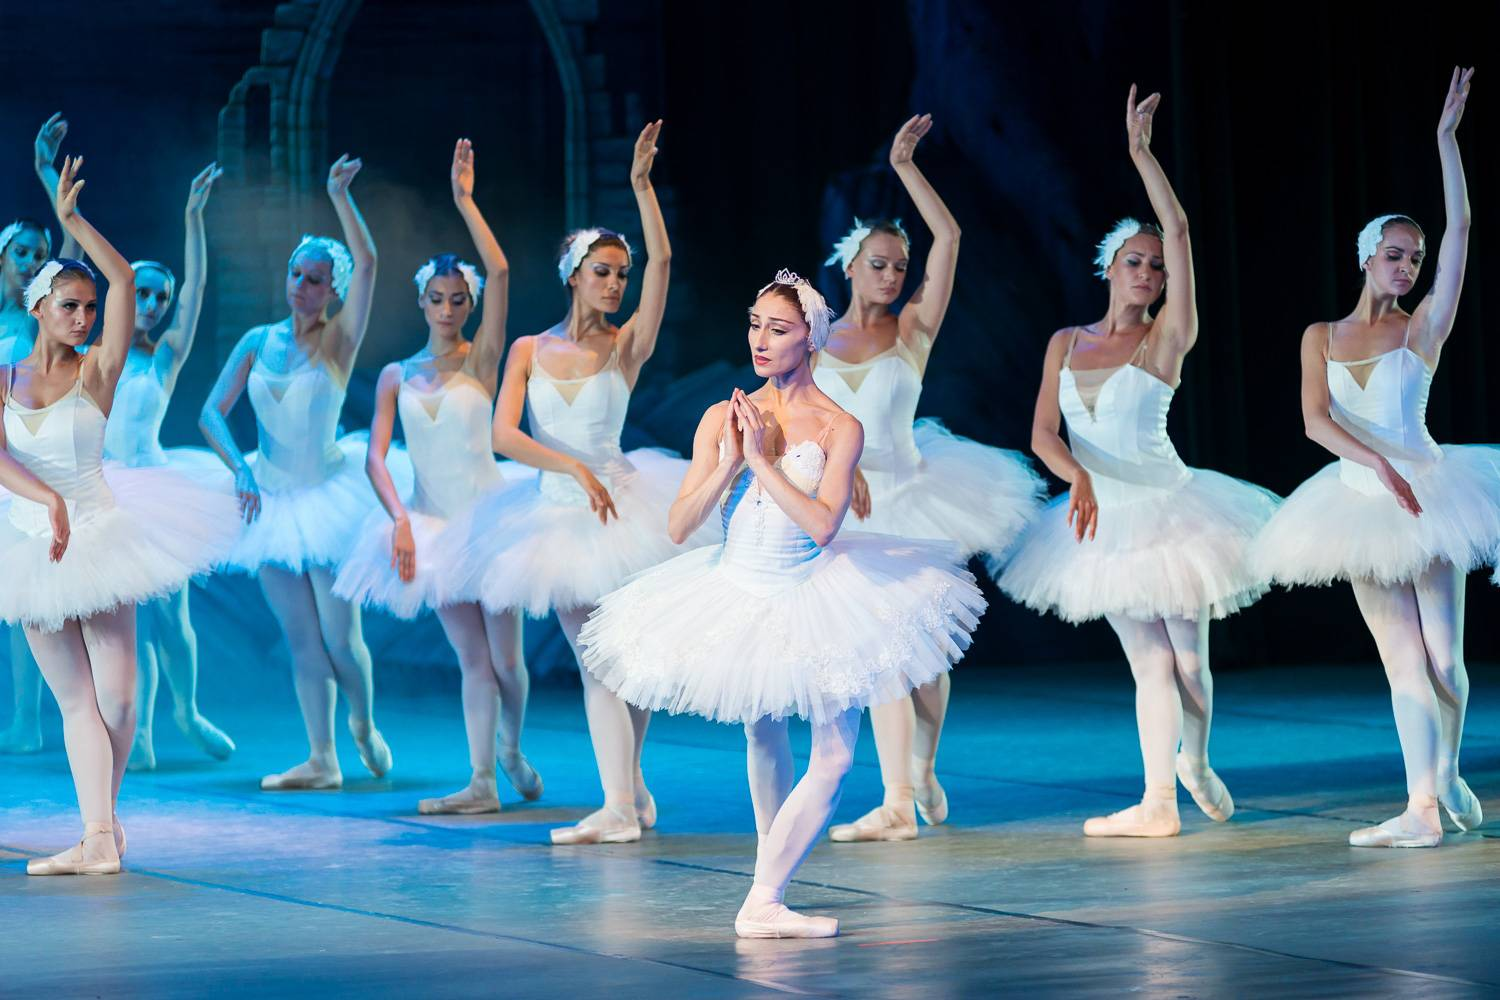 Image of the Swan Lake performance at the Opera de Paris.